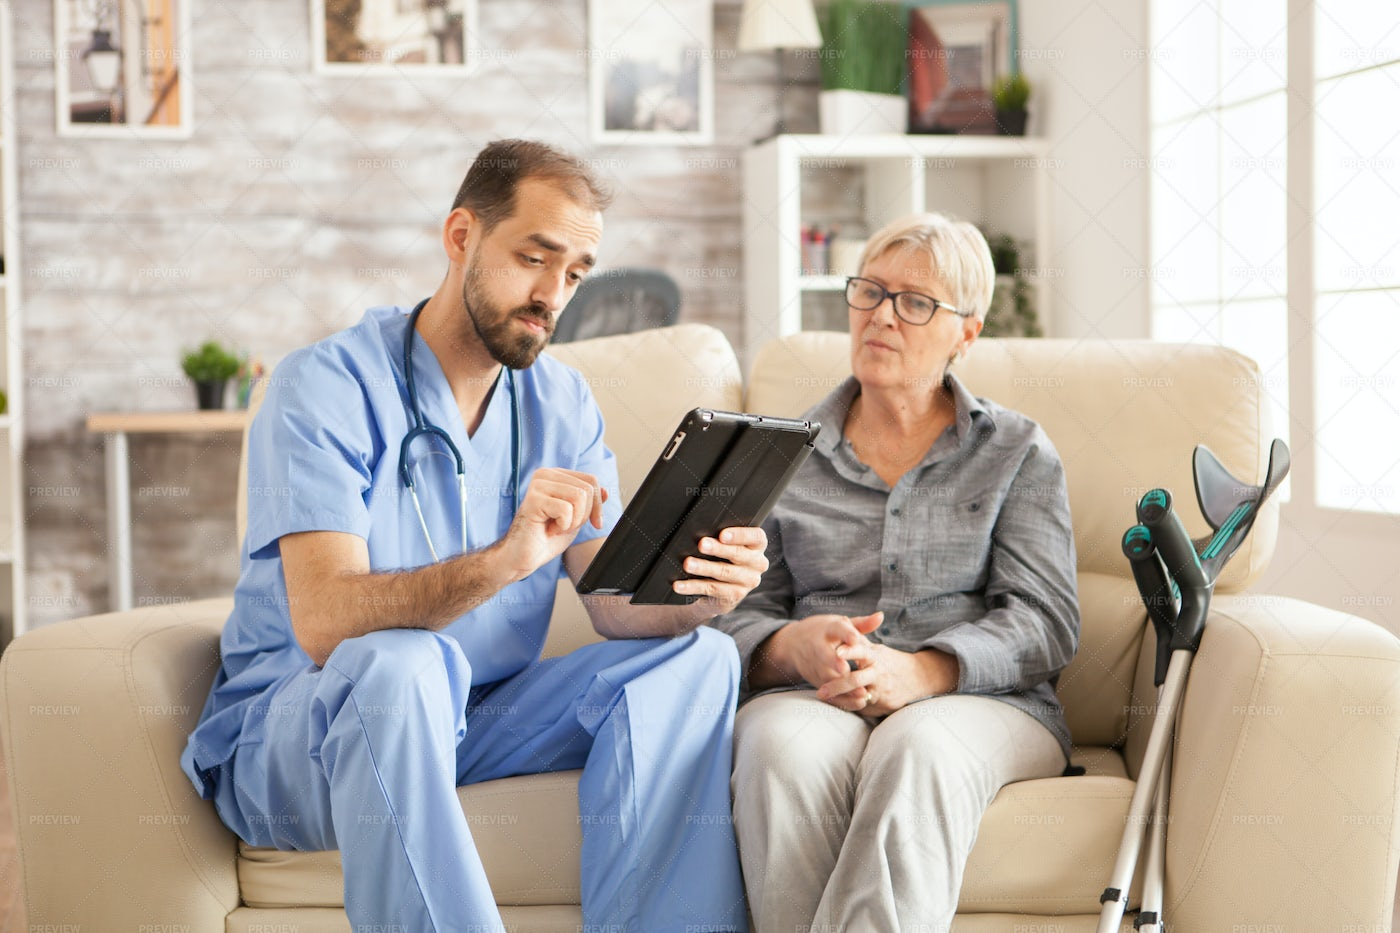 Nurse Reads From A Tablet: Stock Photos